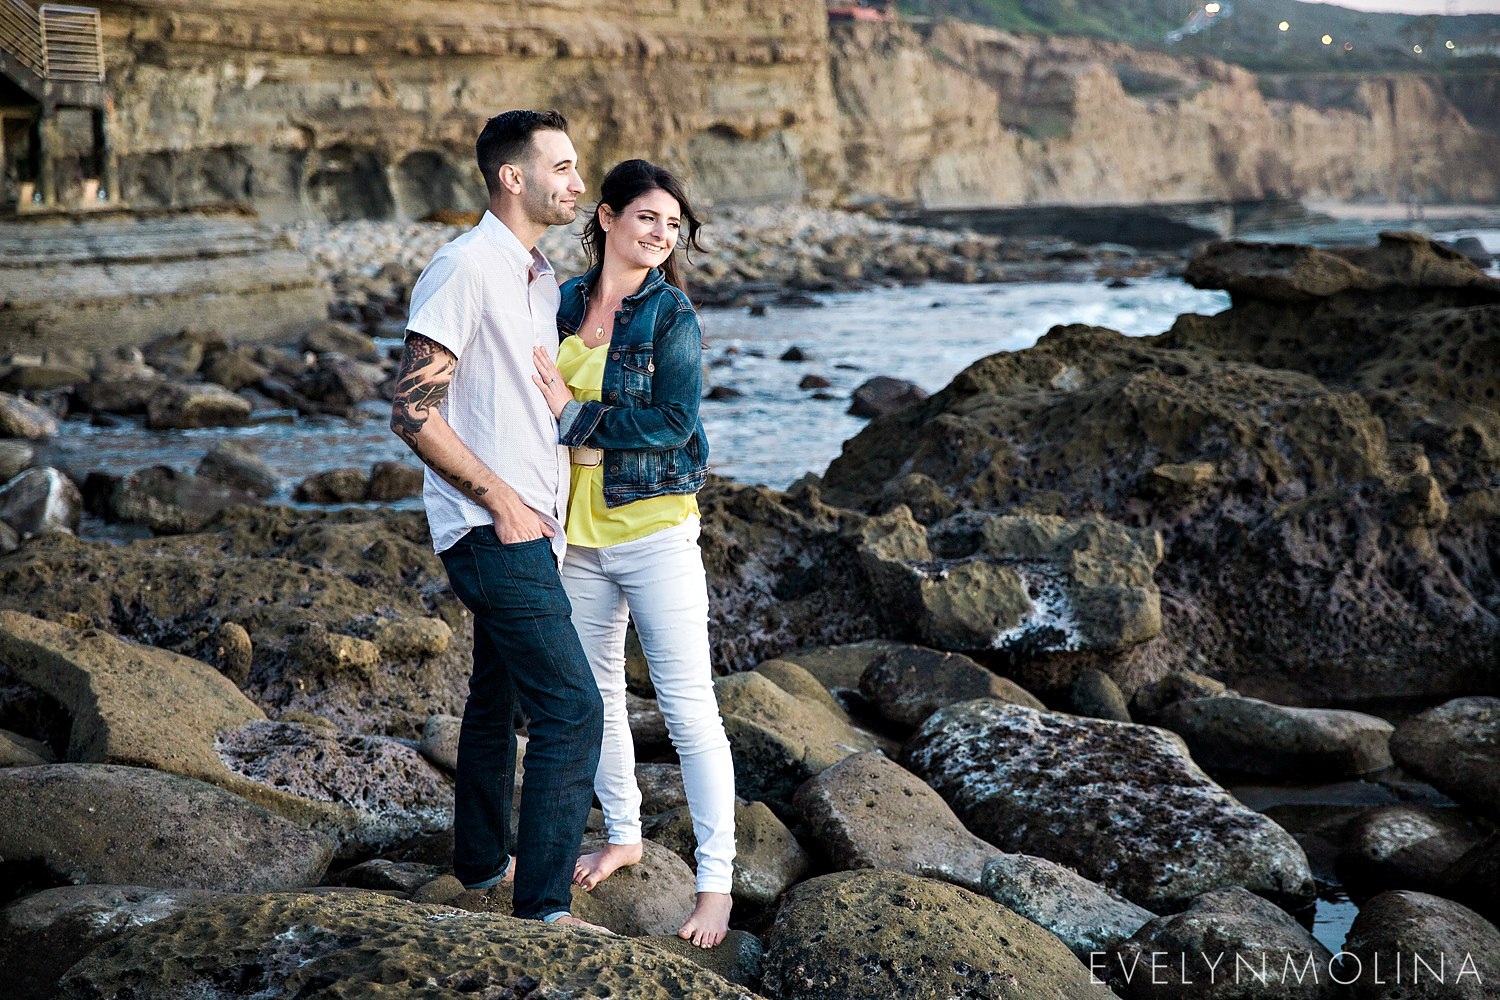 Sunset Cliffs Engagement Session - Carly and Alex - Evelyn Molina Photography_0029.jpg